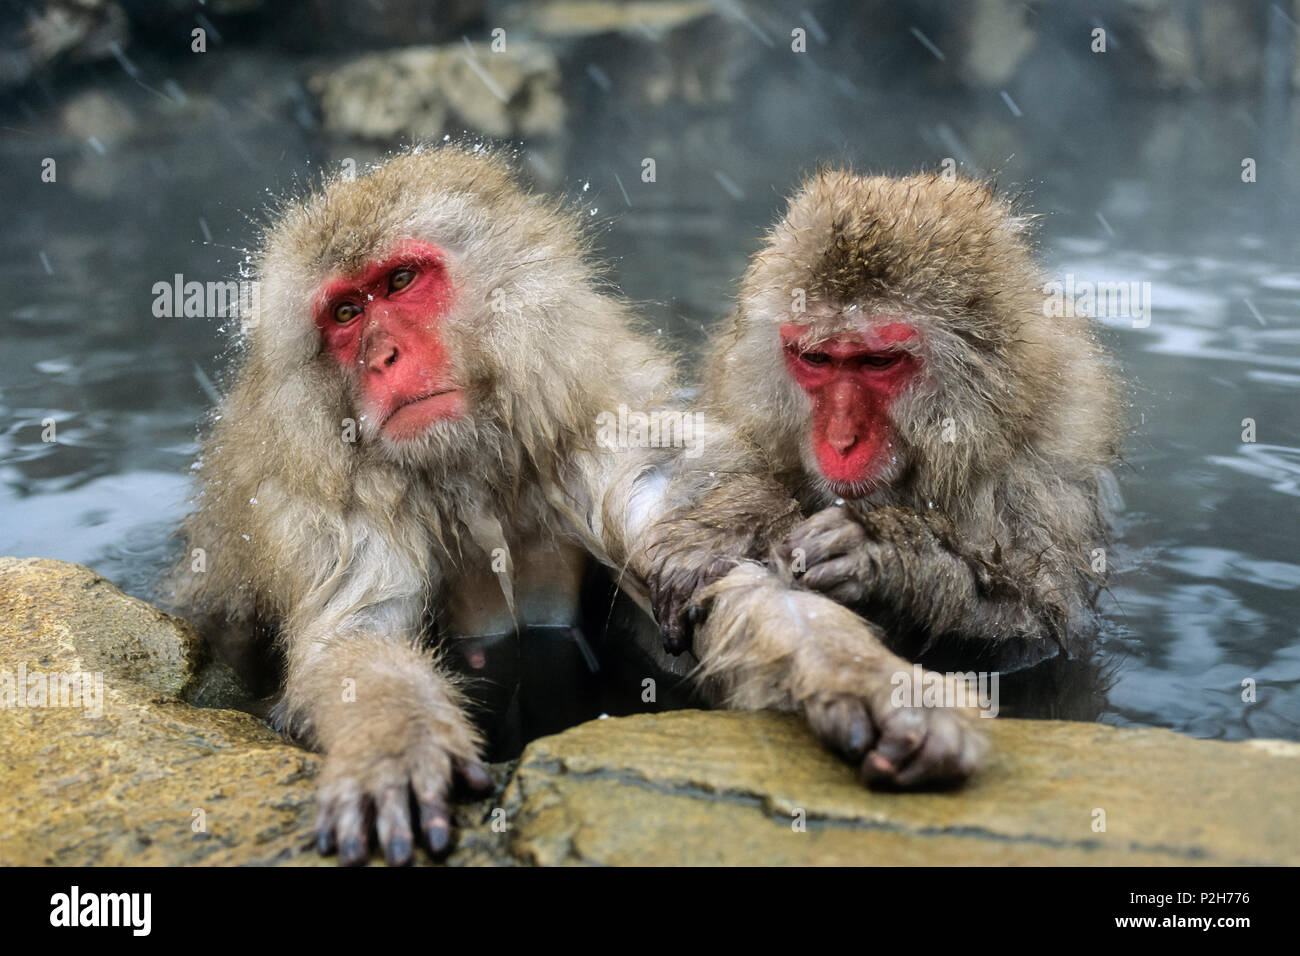 Snowmonkeys, Japanese Macaques in hot spring grooming, Macaca fuscata, Japanese Alps, Japan - Stock Image